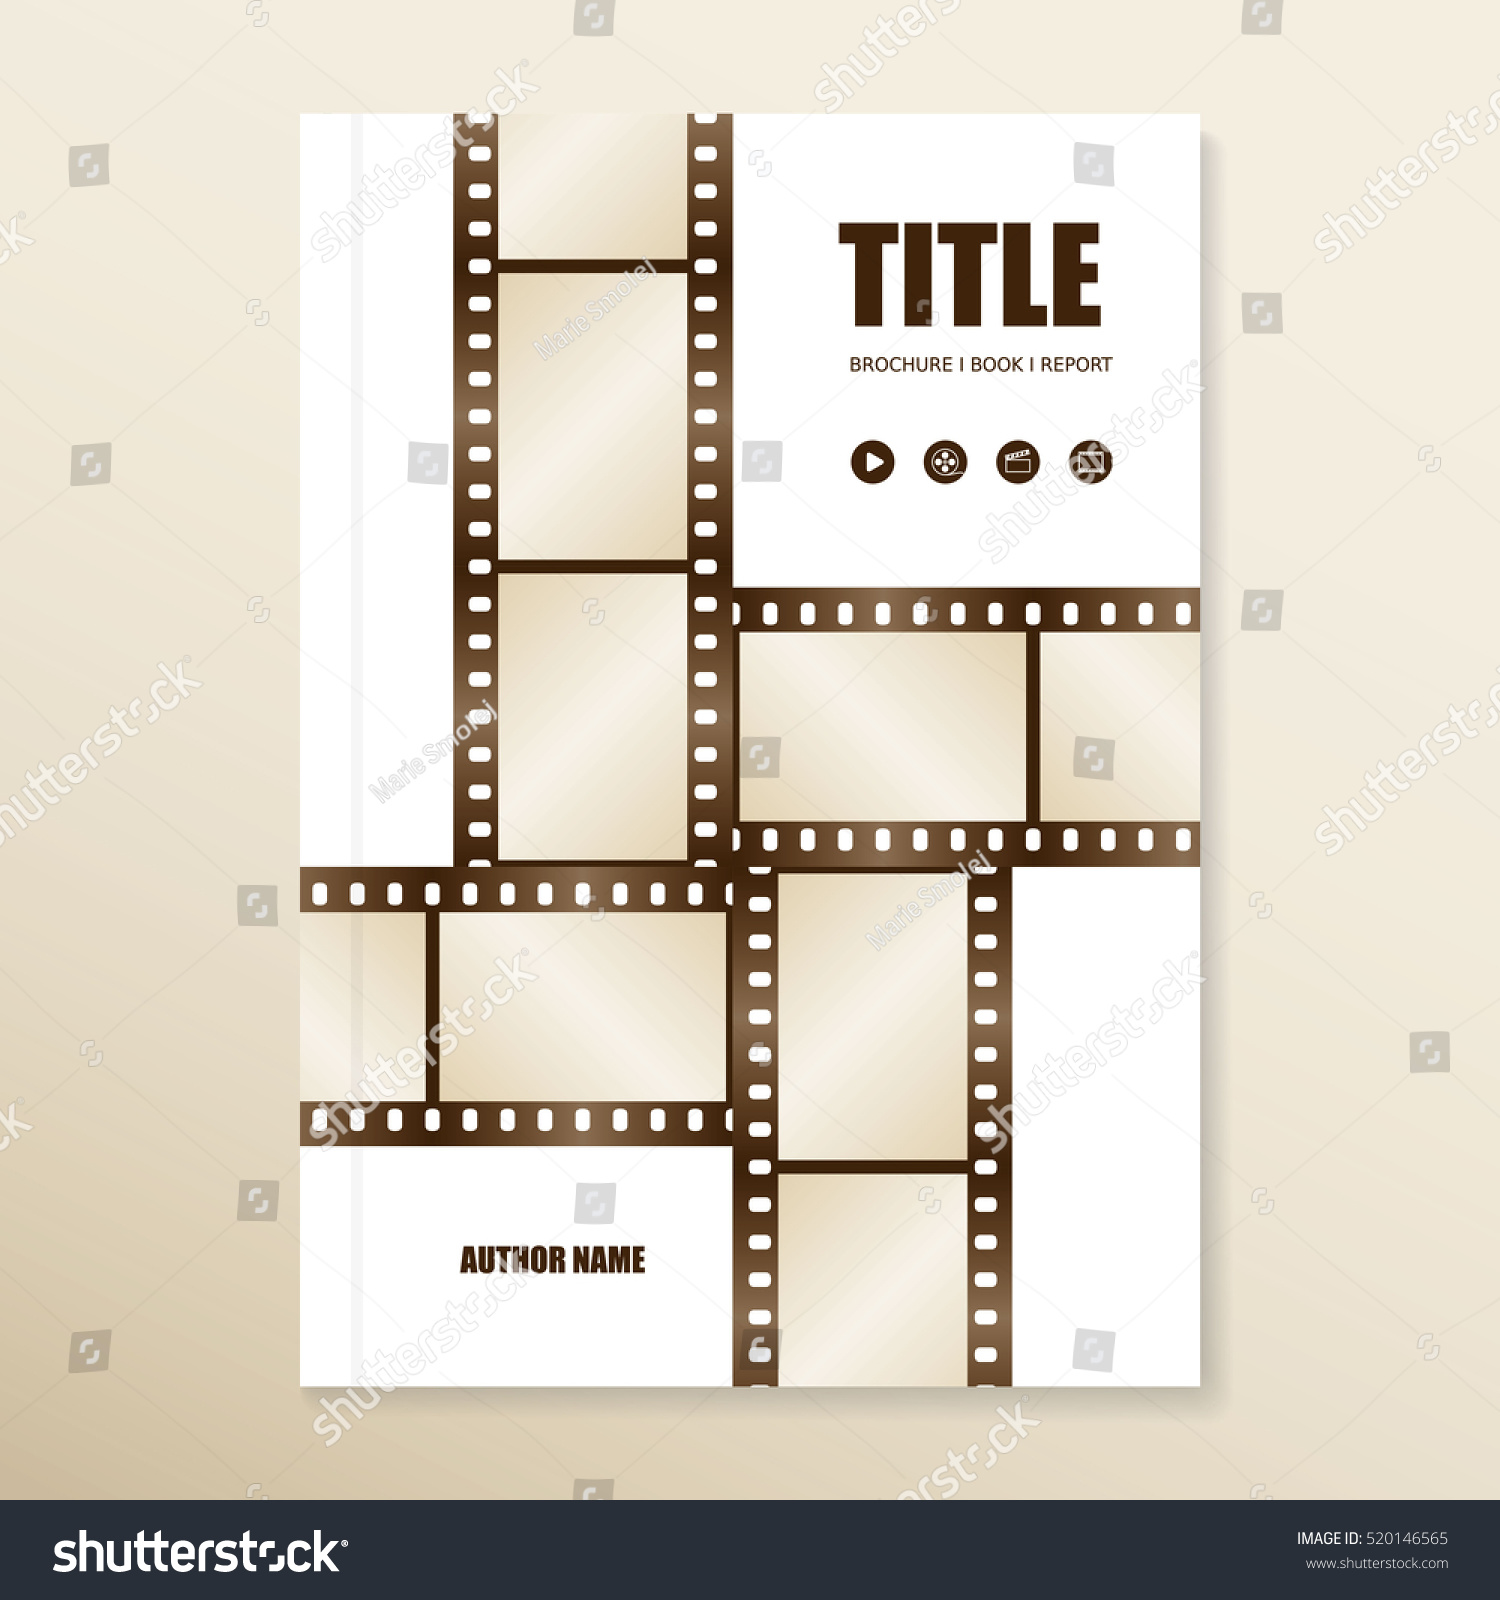 vector brochure report book cover template with film strips use for movies